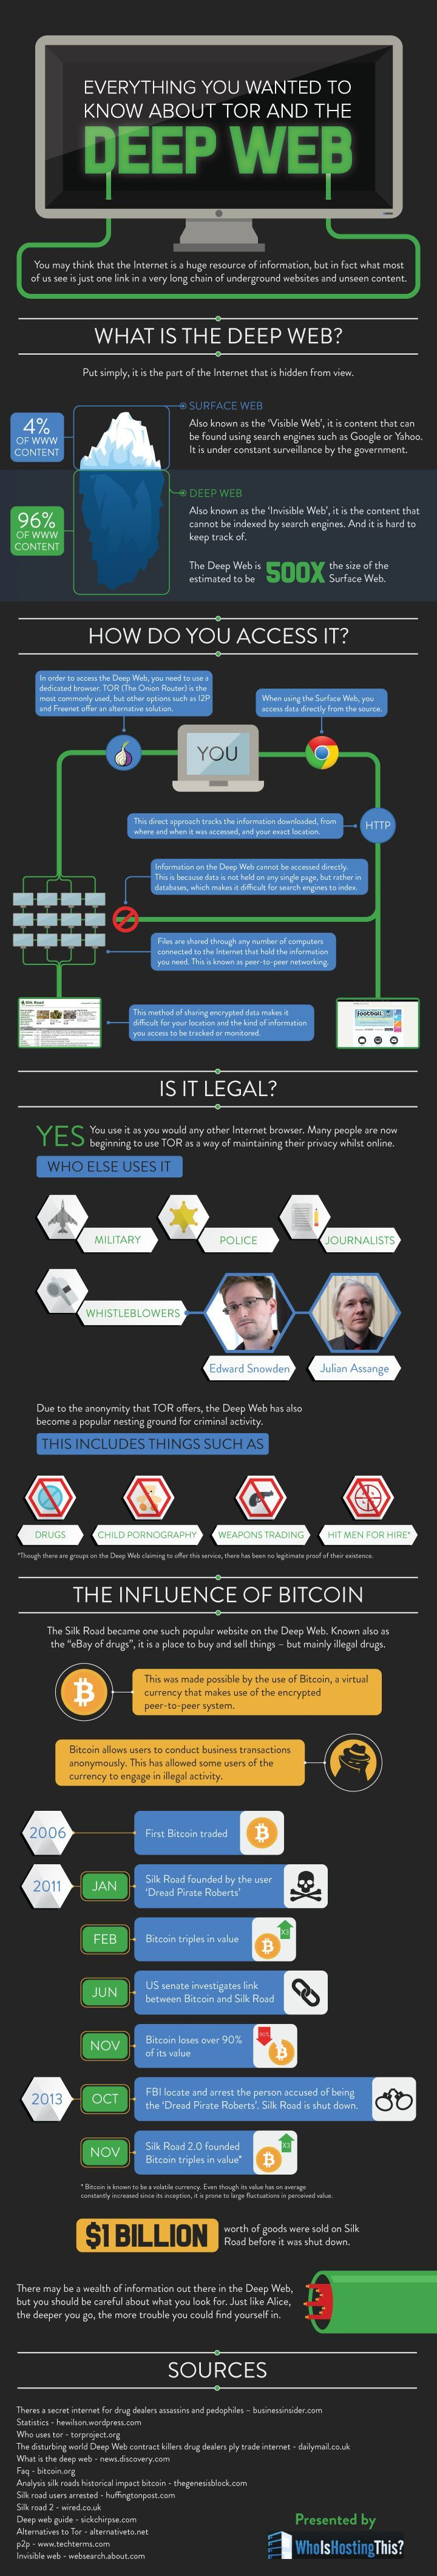 Everything You Wanted To Know About TOR And The Deep Web #Infographic #Internet #TOR: